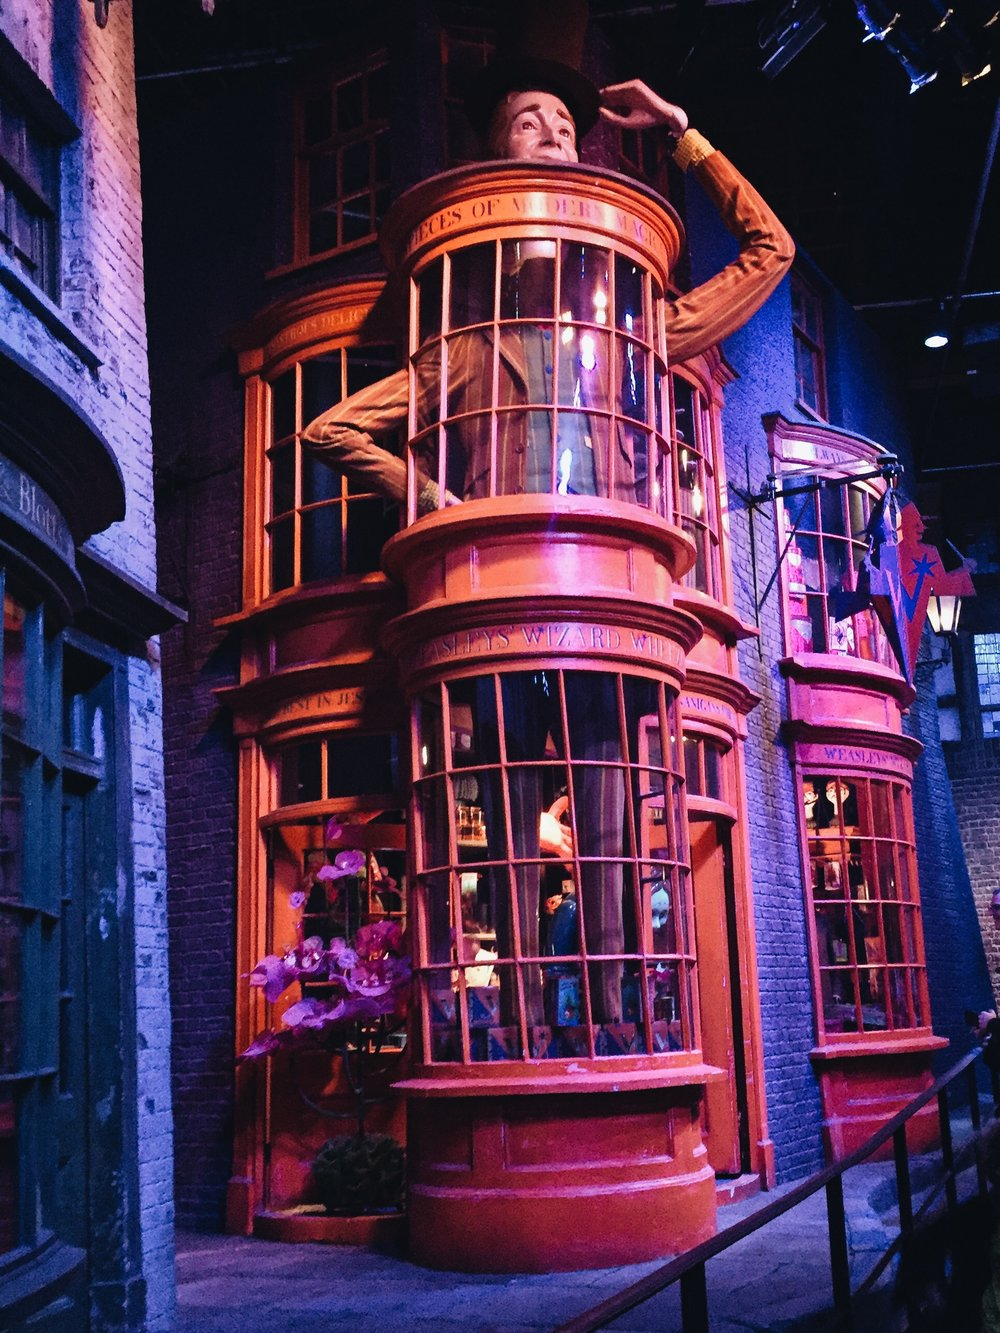 The Making Of Harry Potter: Warner Bros Studio Tour London Diagon Alley Weasley Wheezes